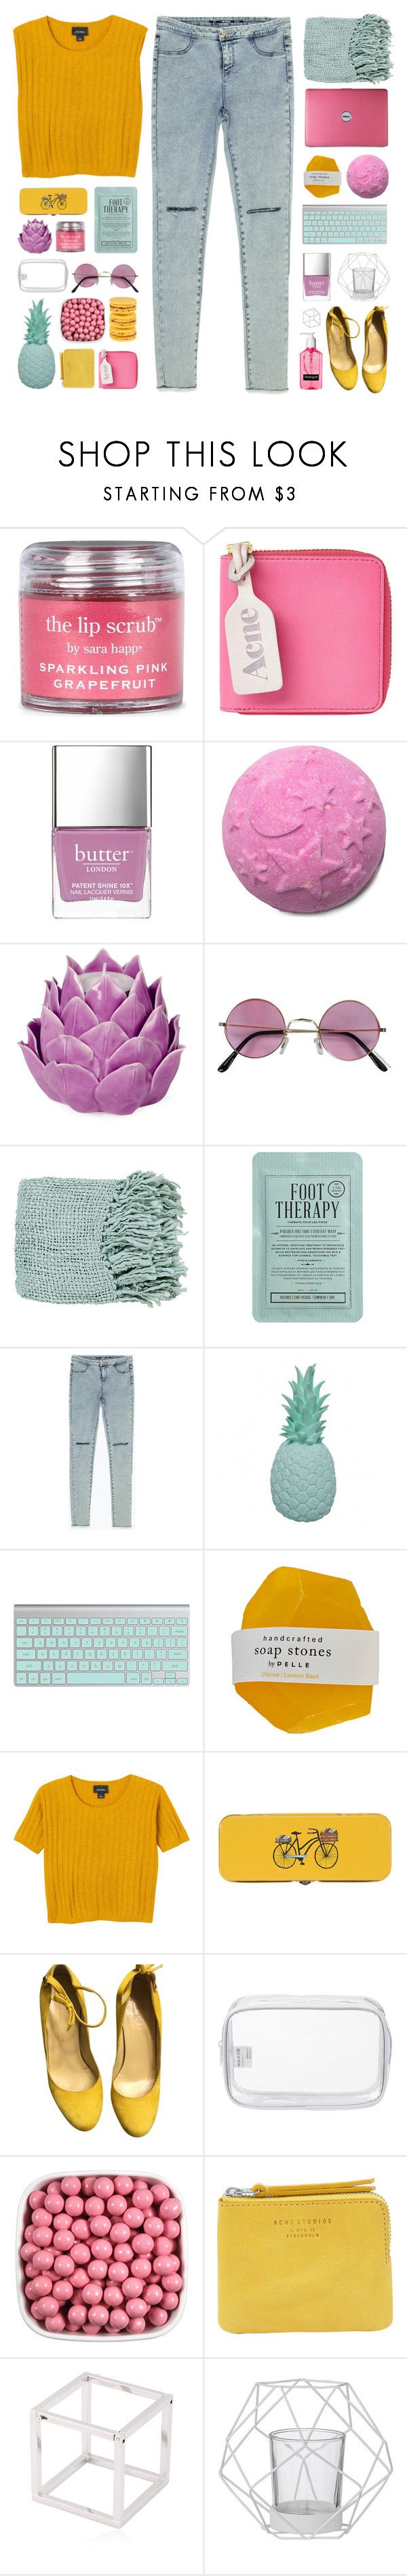 """so hold me tight and don't let go"" by via-m ❤ liked on Polyvore featuring Sara Happ, Acne Studios, Butter London, Zara Home, Surya, Kocostar, Zara, Ananas, Monki and Danica Studio"